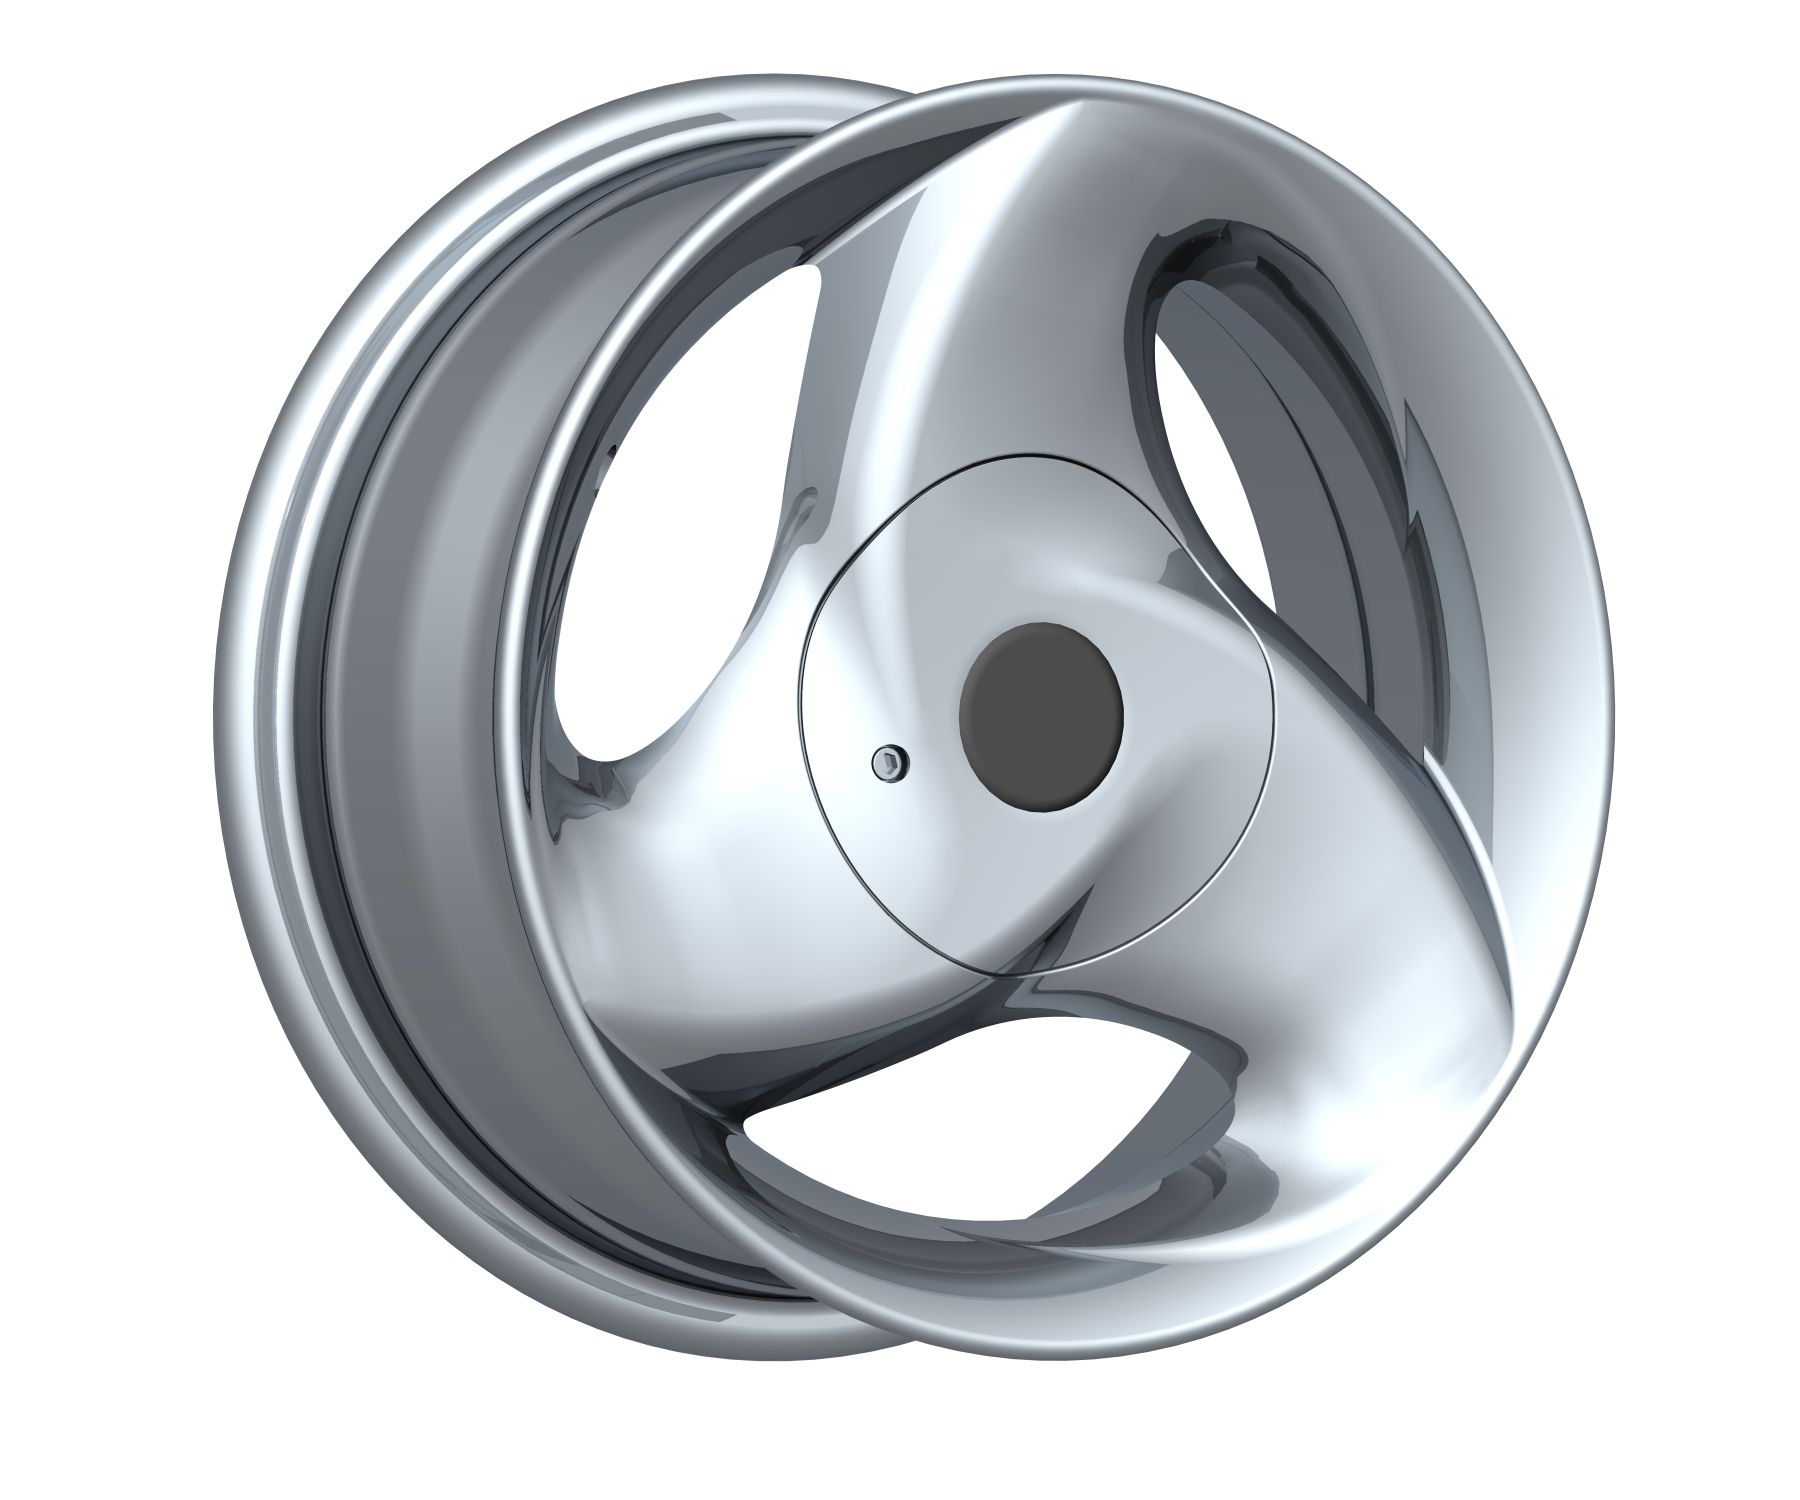 13*5.5 4X100 3 spoke special car alloy aluminium wheel rims with cheap price